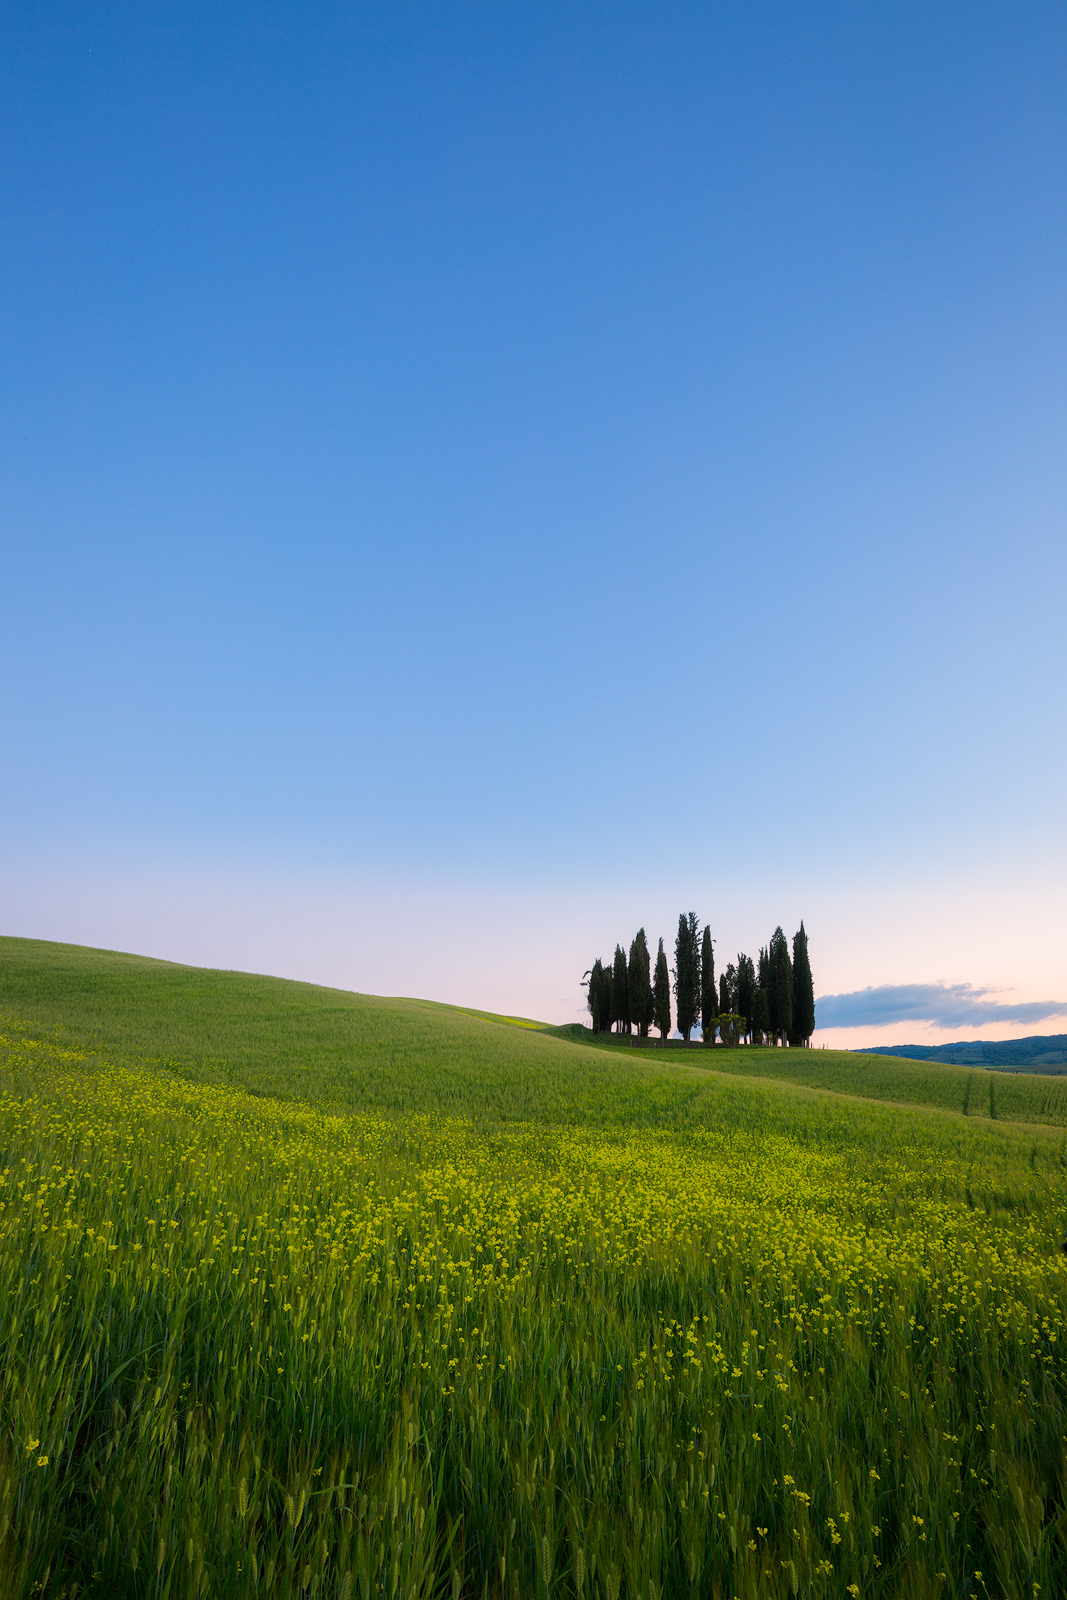 2016,May,Spring,blue hour,cyprus,europe,evening,hills,italy,landscape,portrait,rolling,san quirico d'orcia,tree,trees,tuscany,twilight,vertical,wheat fields, photo